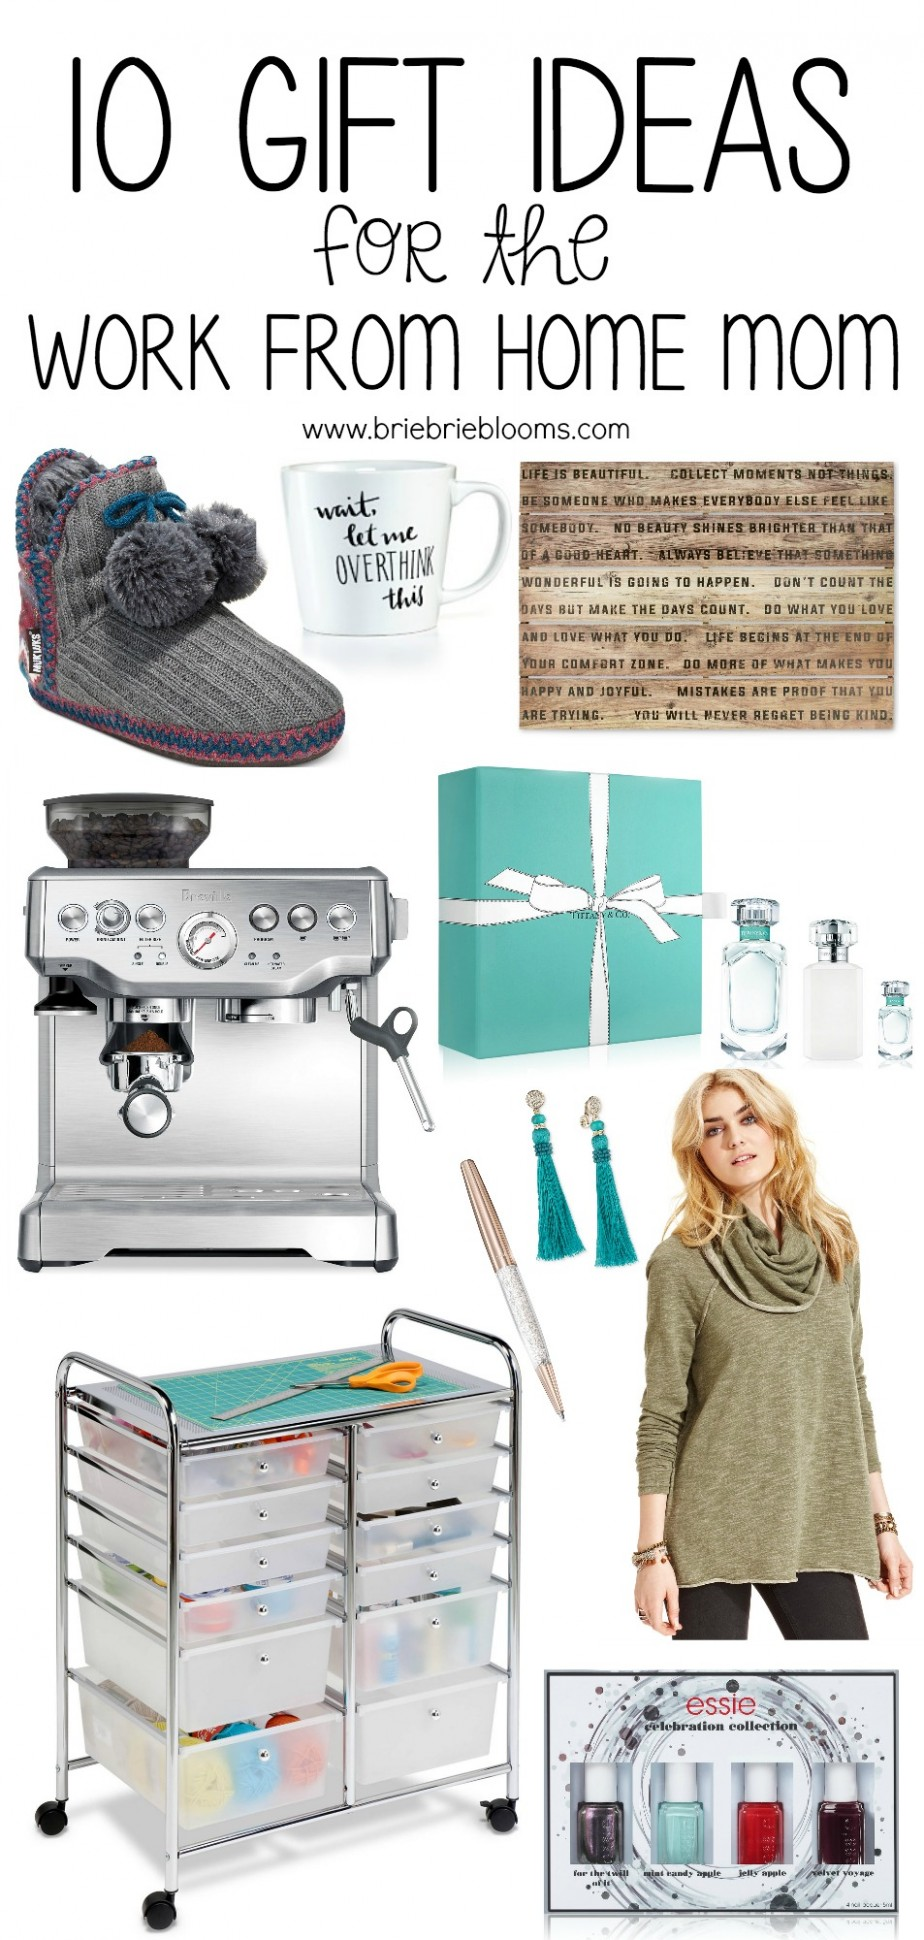 11 Gift Ideas for the Work from Home Mom - Brie Brie Blooms - Home Office Gift Ideas